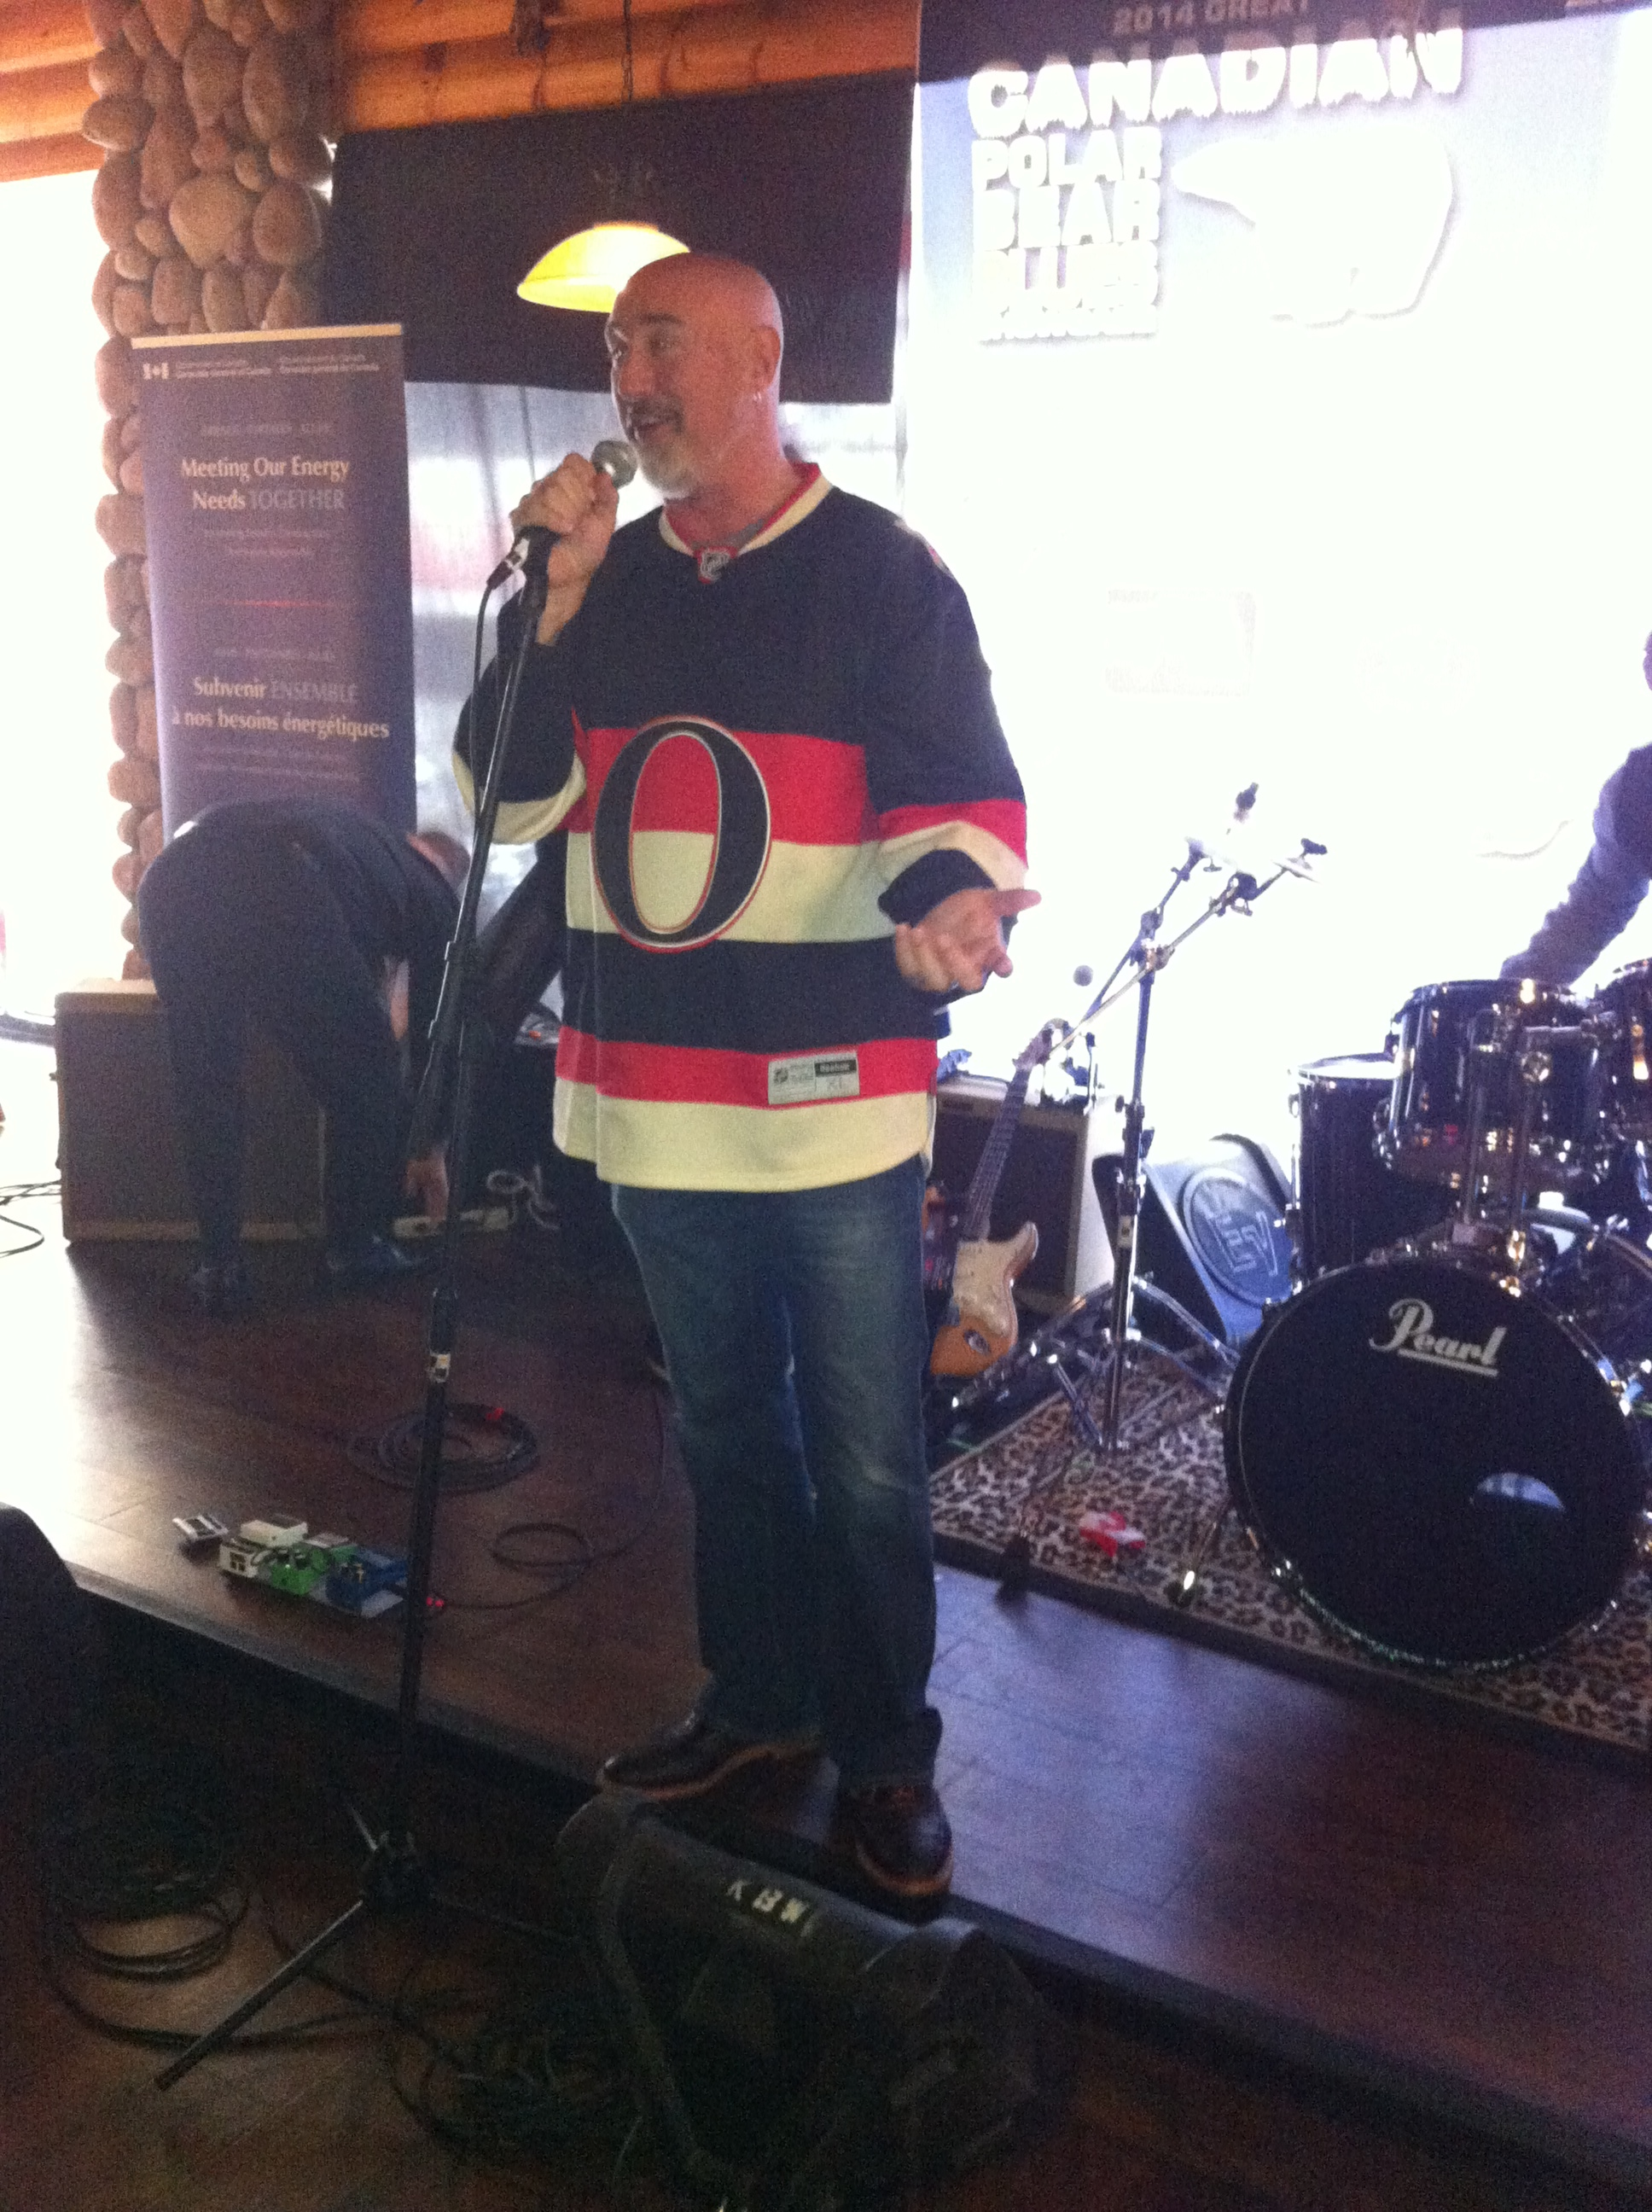 Kooky Canuck owner Shawn Danko welcomes everyone to the Polar Bear Jam.